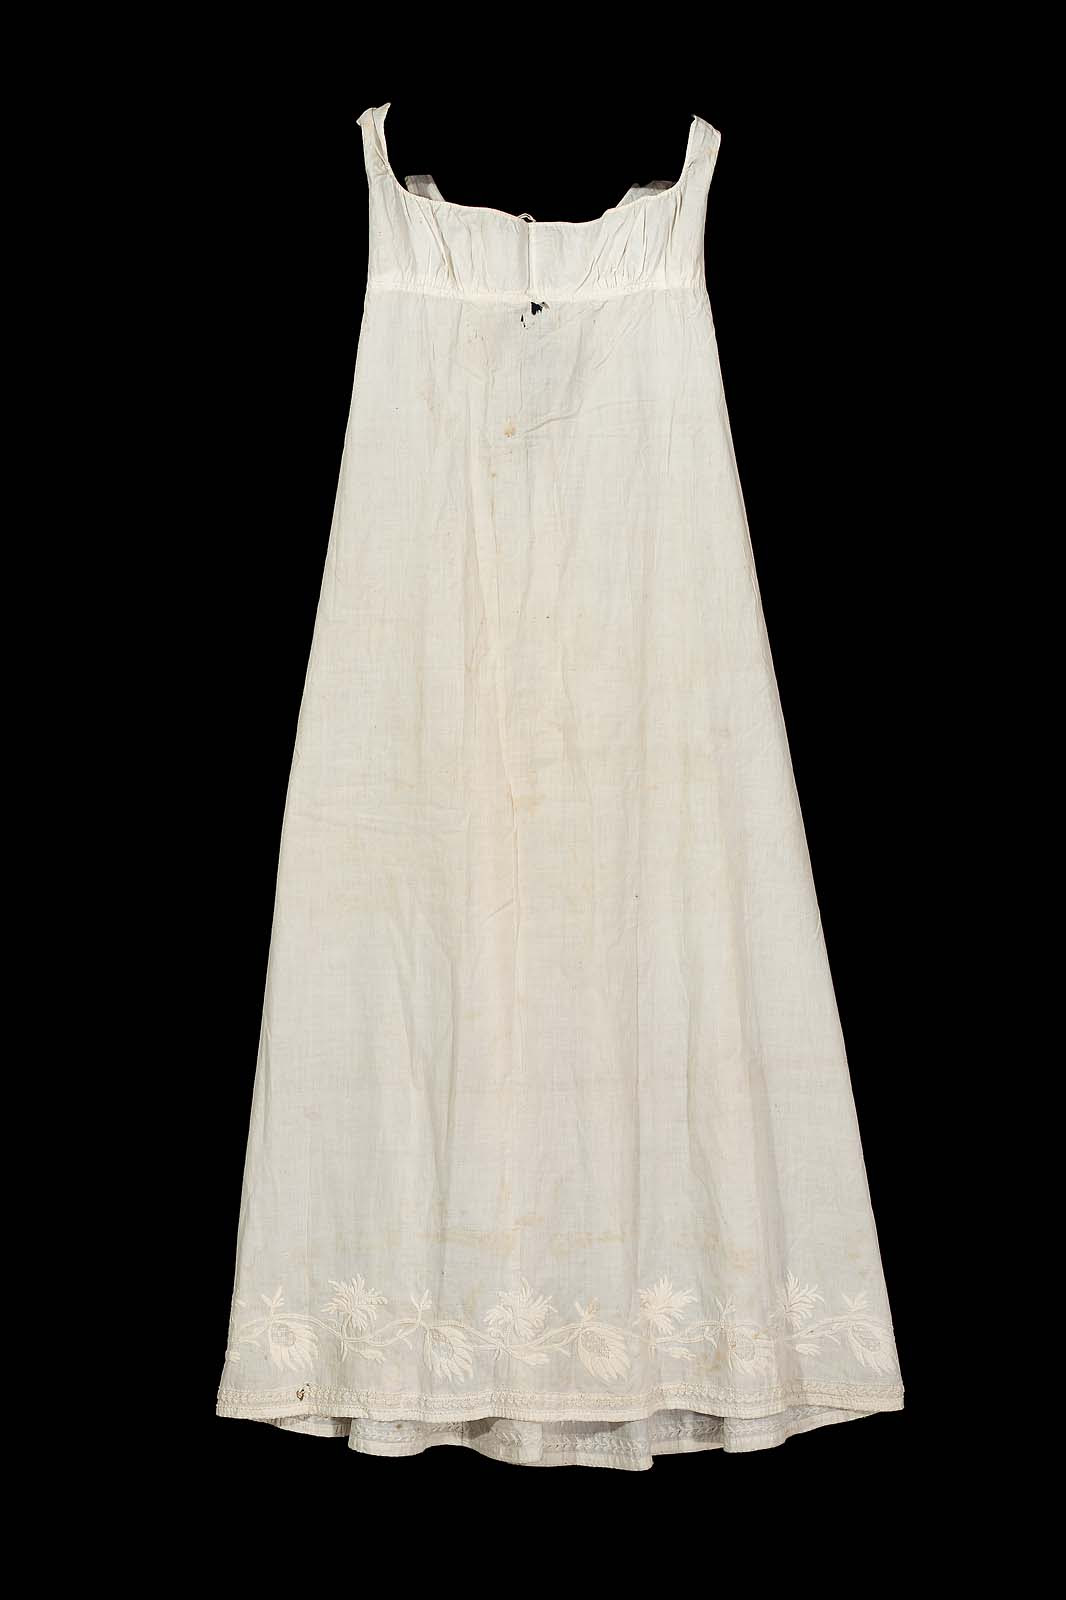 Early 1820s petticoat from the Museum of Fine Arts Boston.